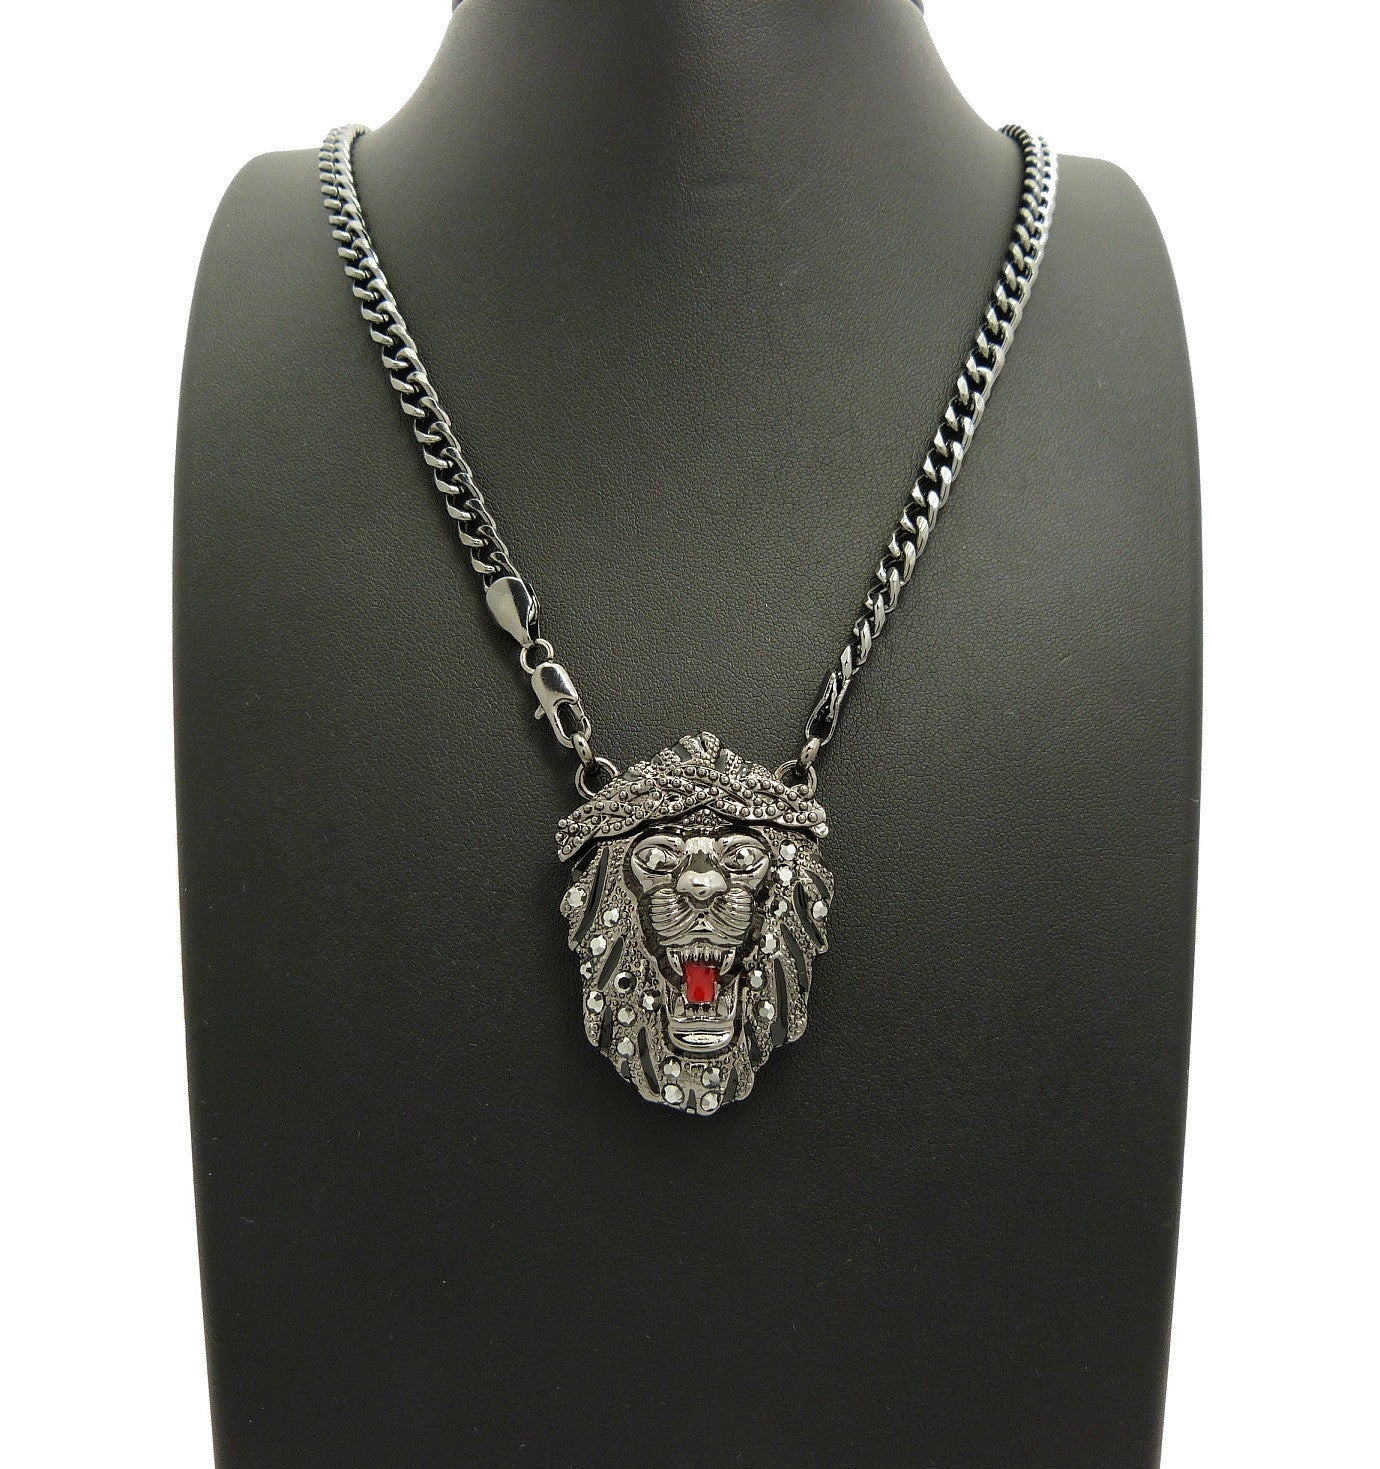 Stone Stud Crowned Fierce Lion Head Pendant